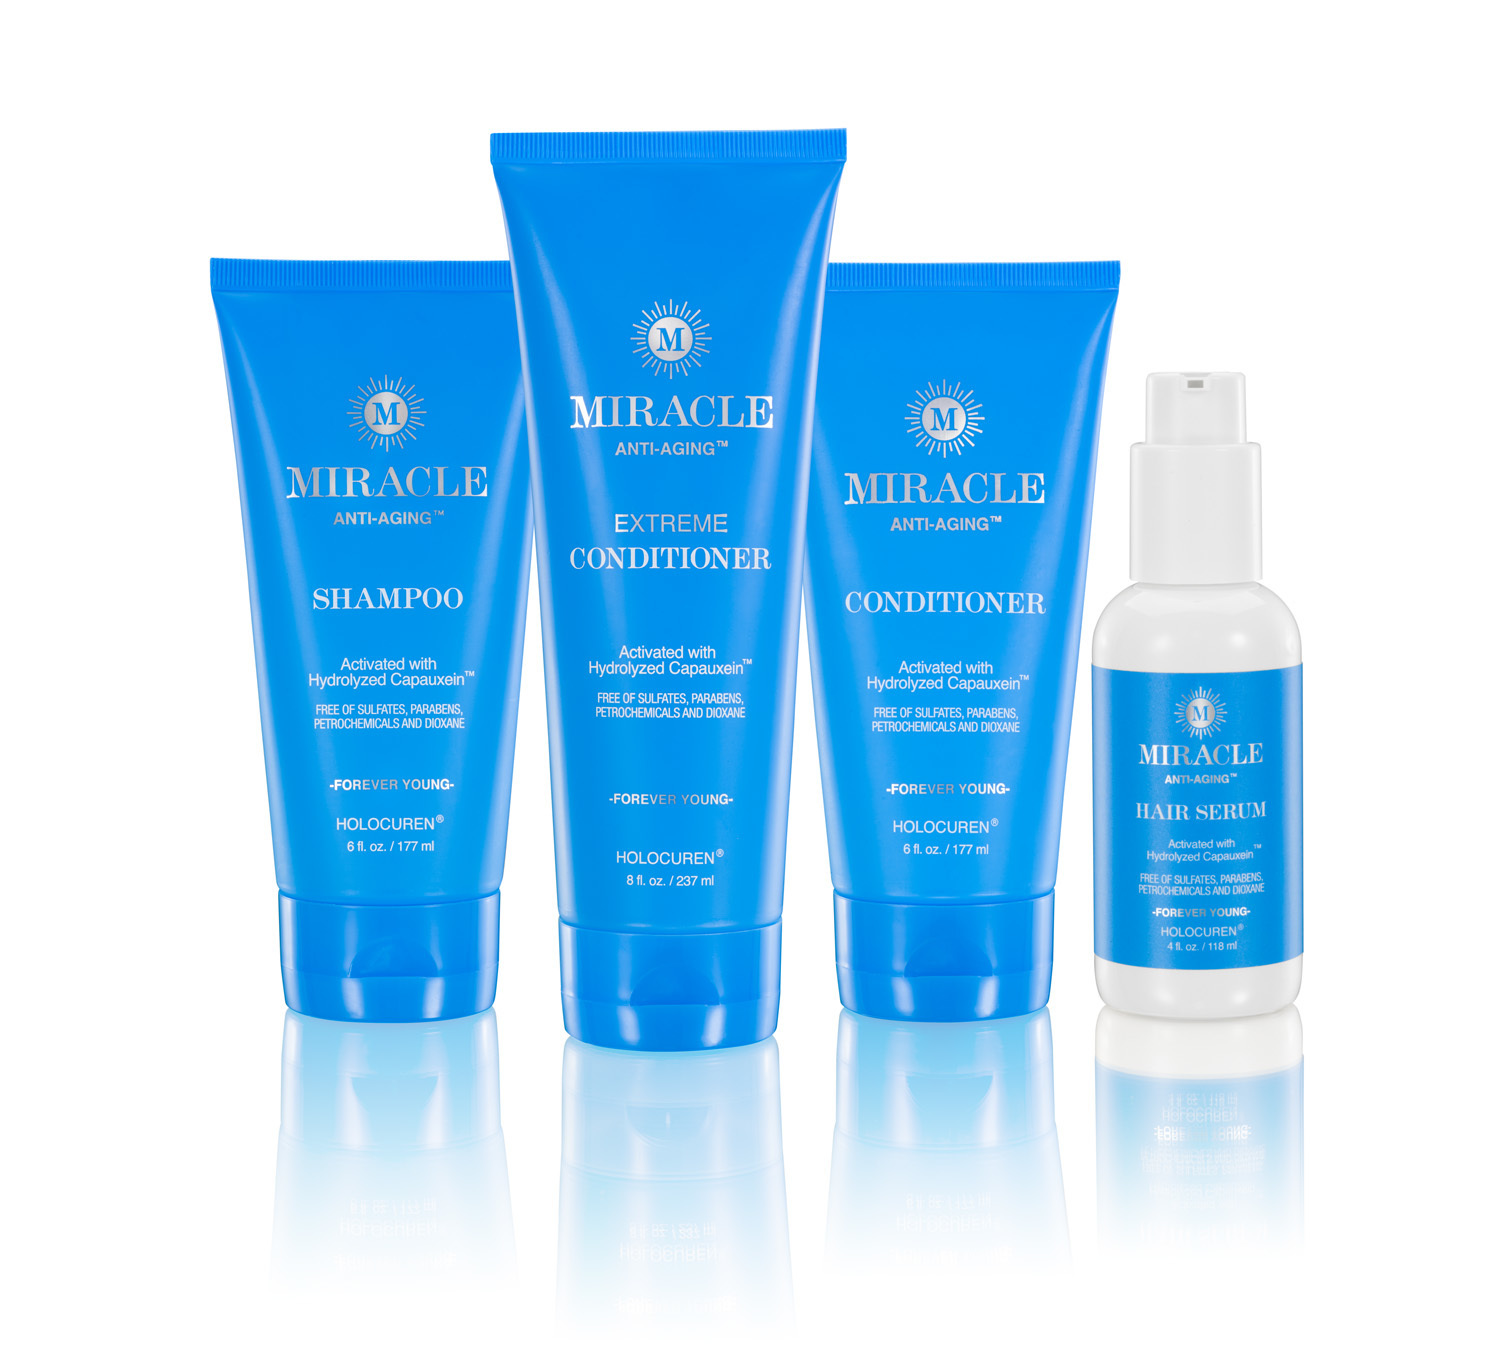 Set of Miracle Anti-Aging Hair Care